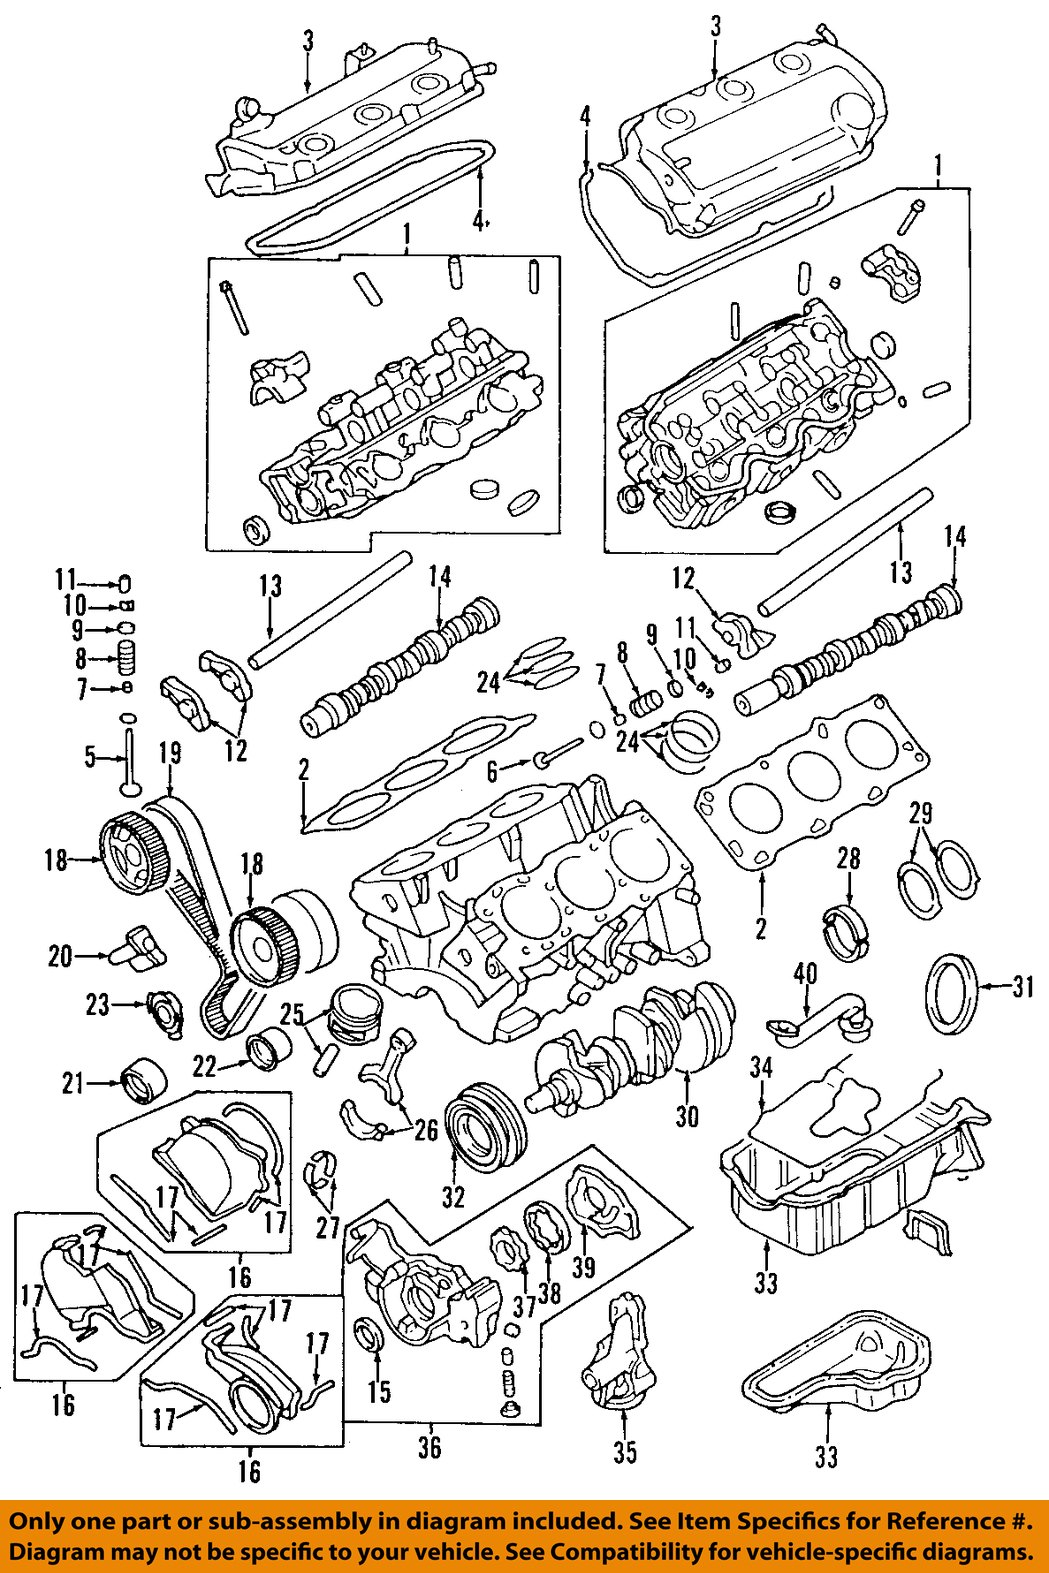 1998 mitsubishi montero sport radio wiring diagram typical ignition switch 2000 engine